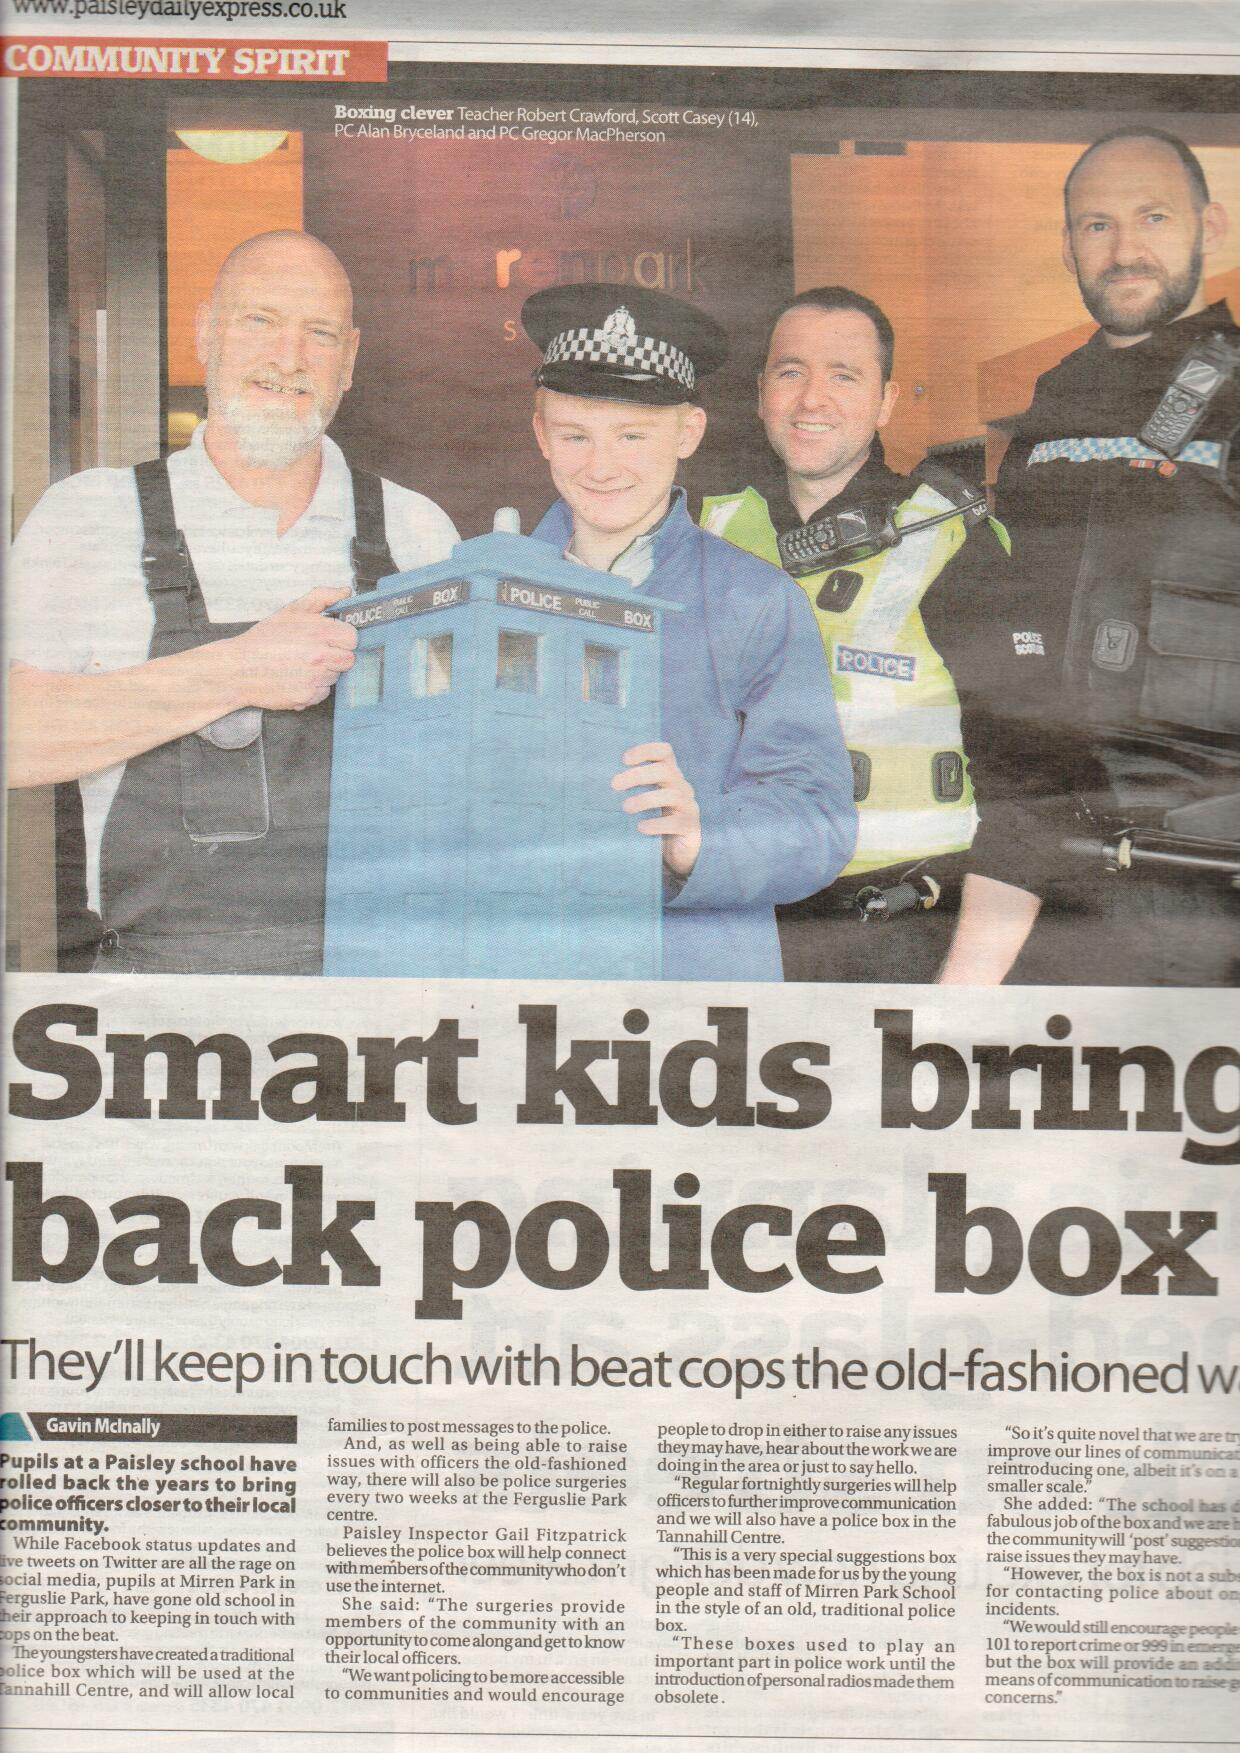 Paisley Daily Express, August 2015